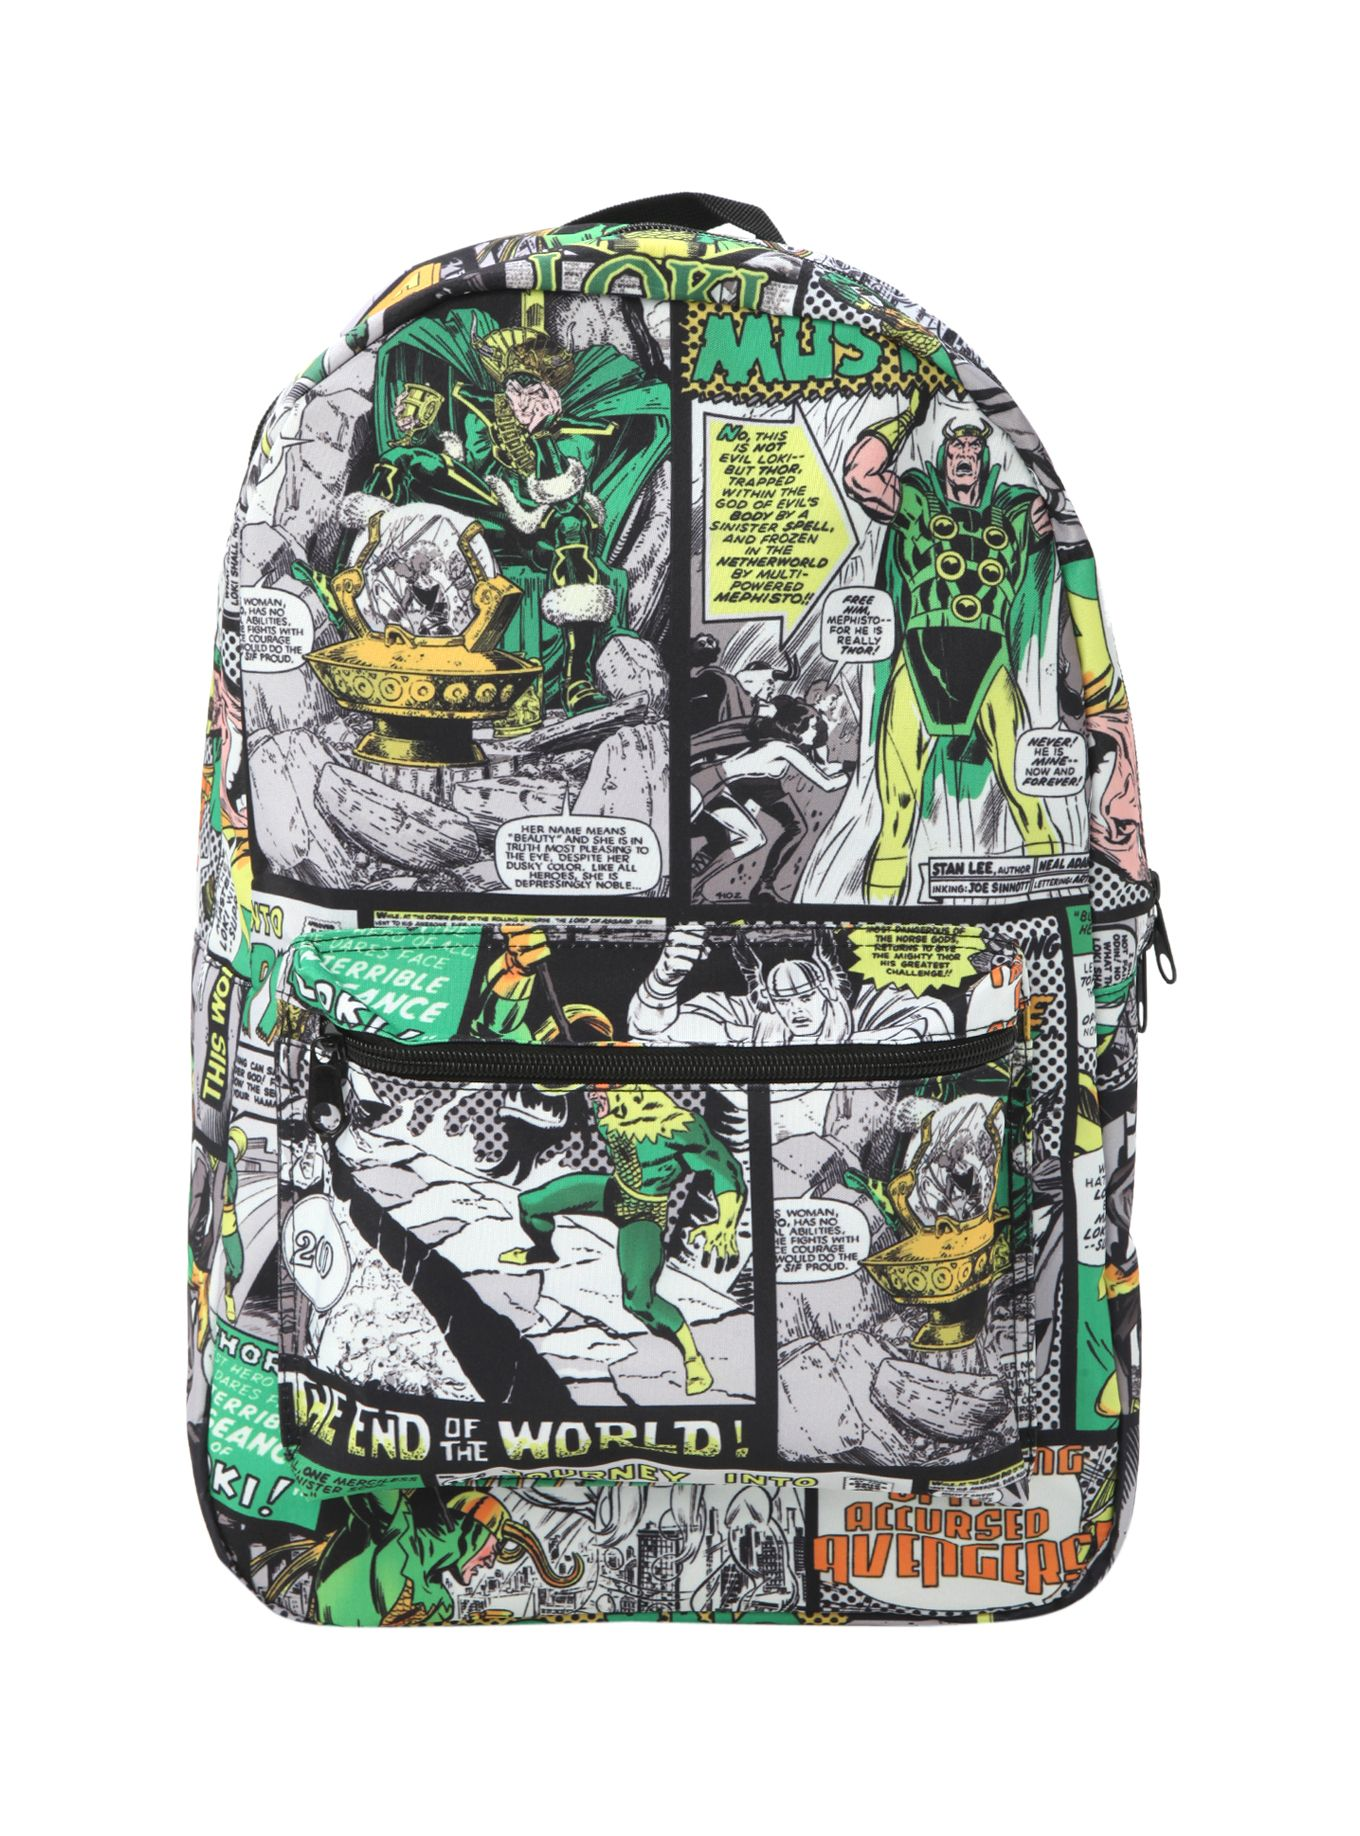 Kleiderschrank comic  Marvel Loki Comic Panel Backpack | Hot Topic | Avengers/Loki ...